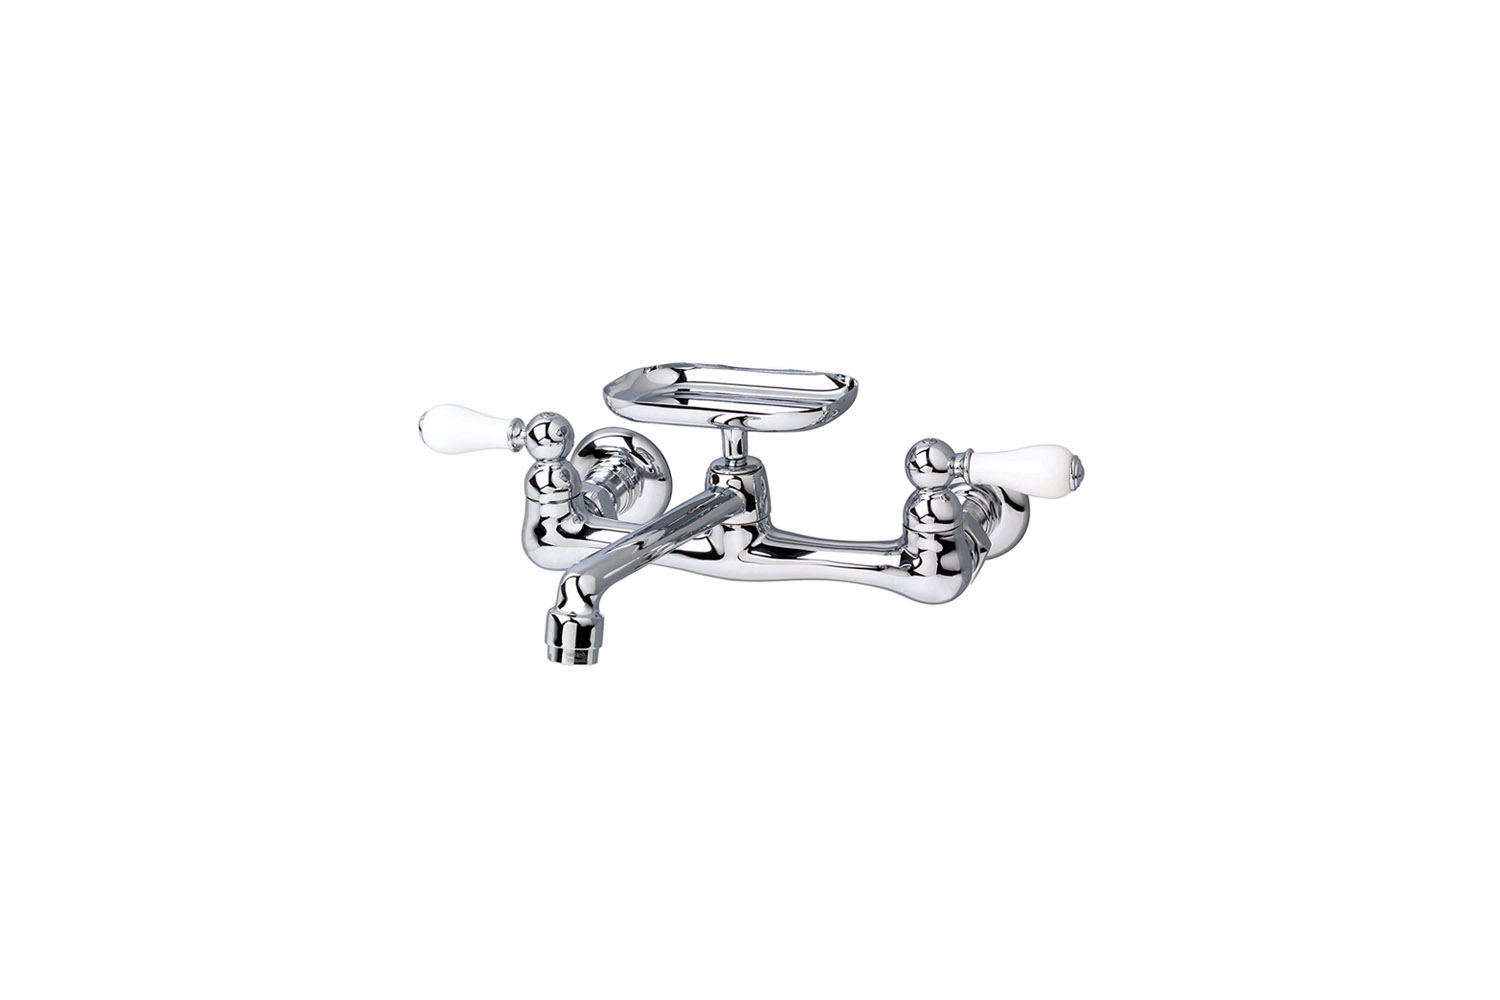 American Standard Heritage Wall-Mount Faucet with Soap Dish